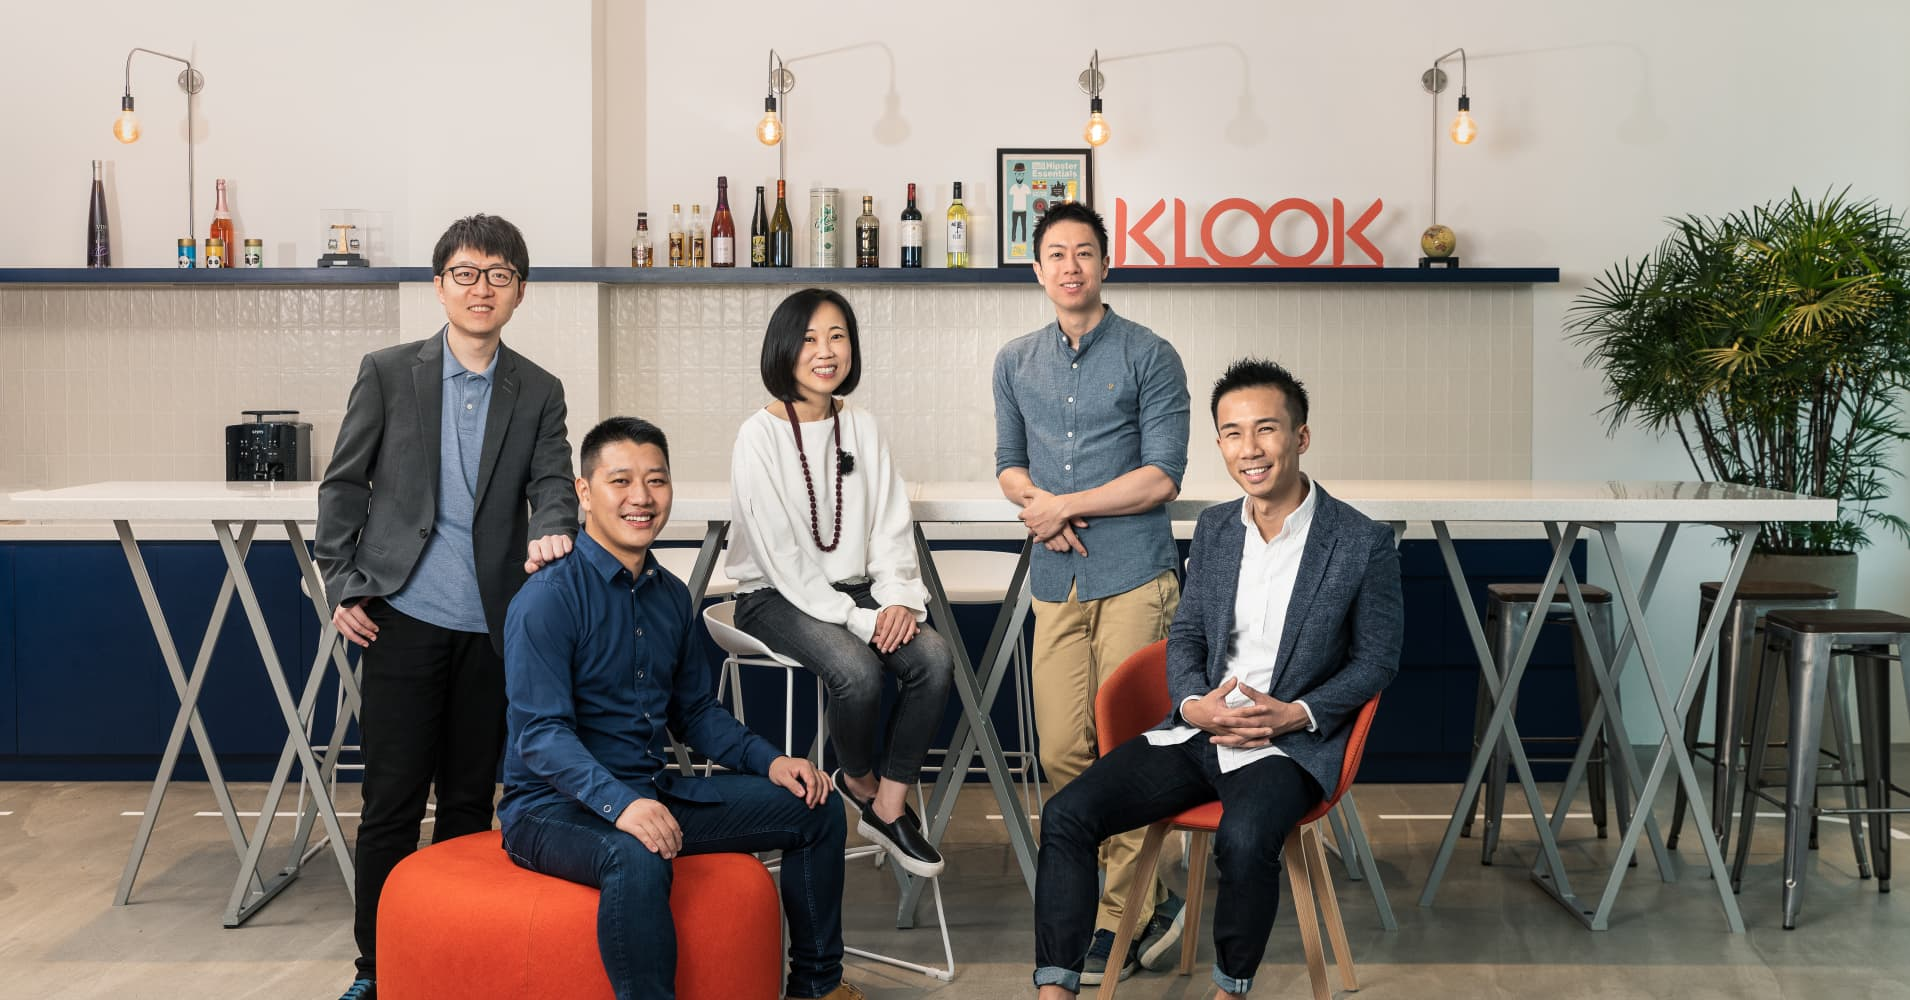 Klook's executive team featuring David Liu, Bernie Xiong, Anita Ngai, Eric Gnock Fah and Ethan Lin, chief executive officer.